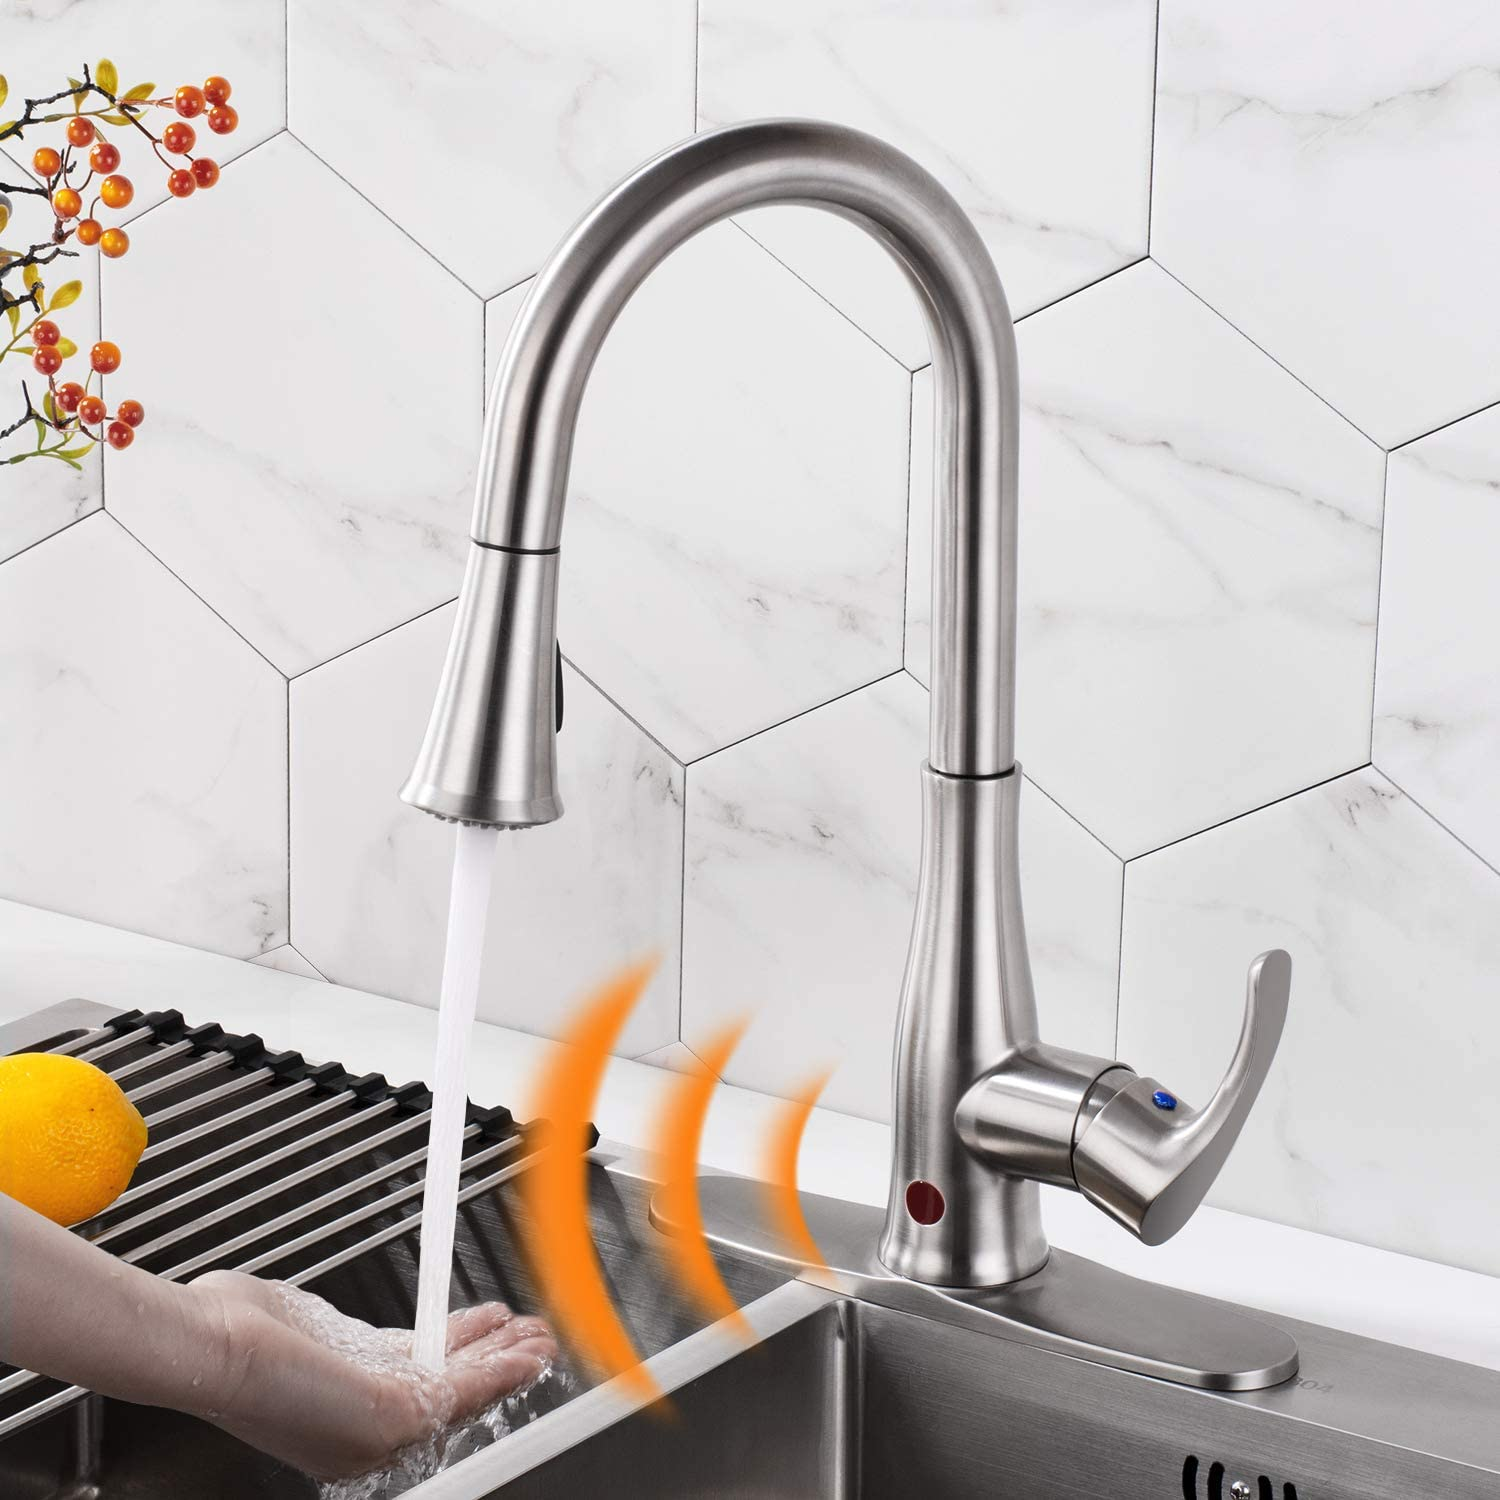 Pros and Cons of touchless kitchen faucets